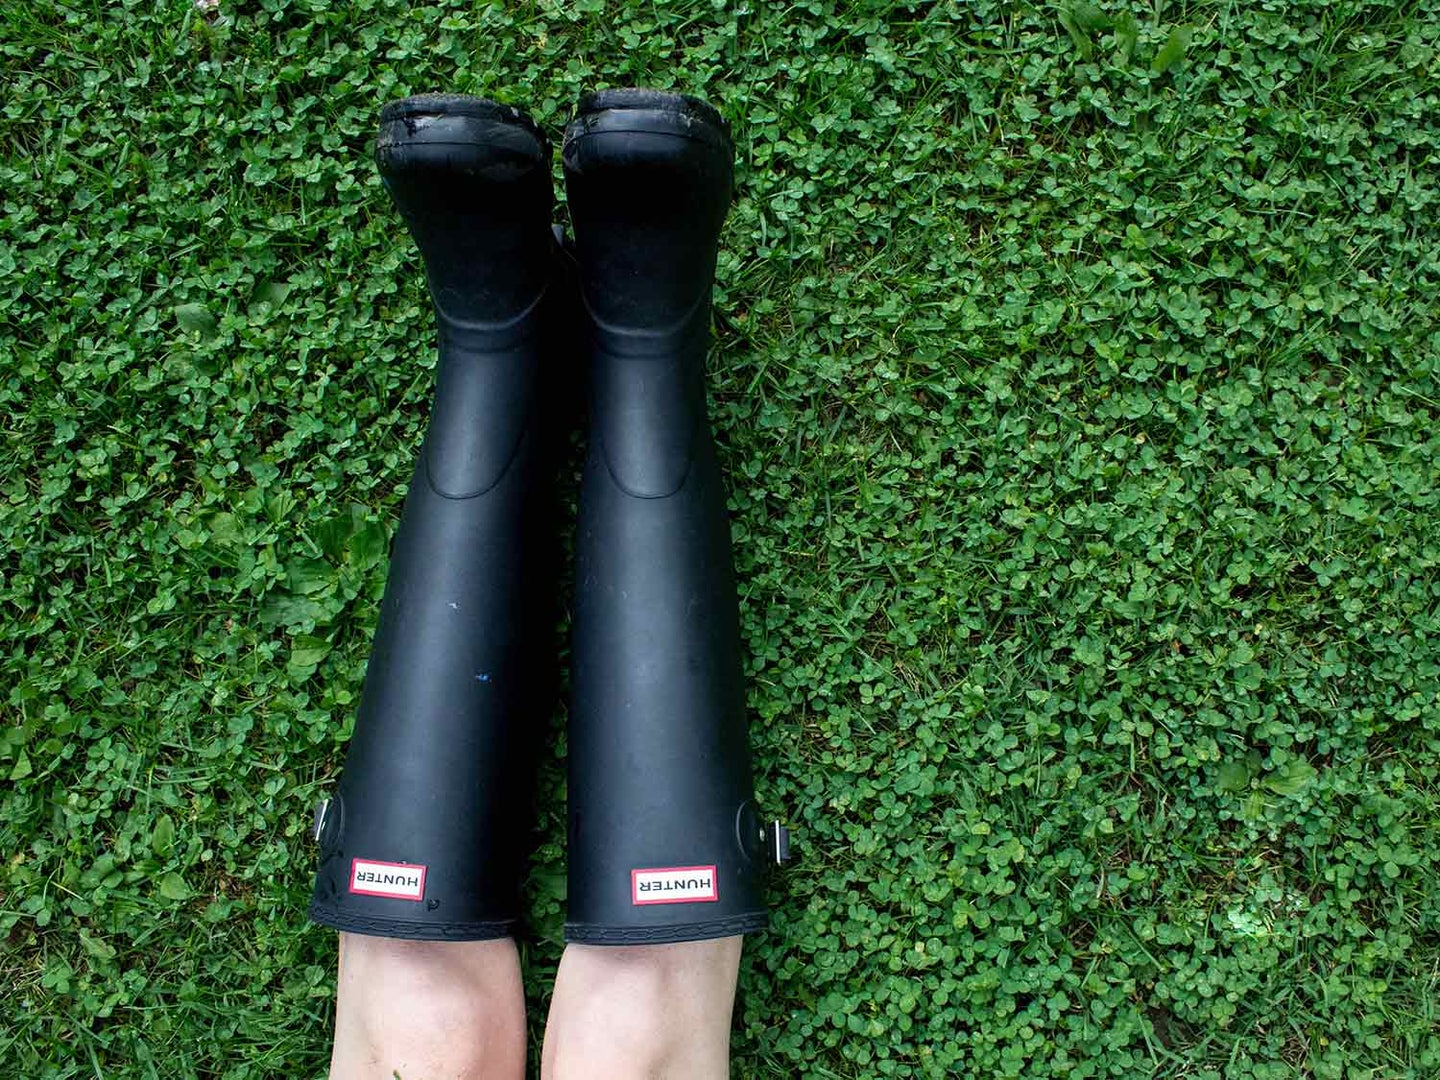 Wearing rain boots while stretched out on lawn.